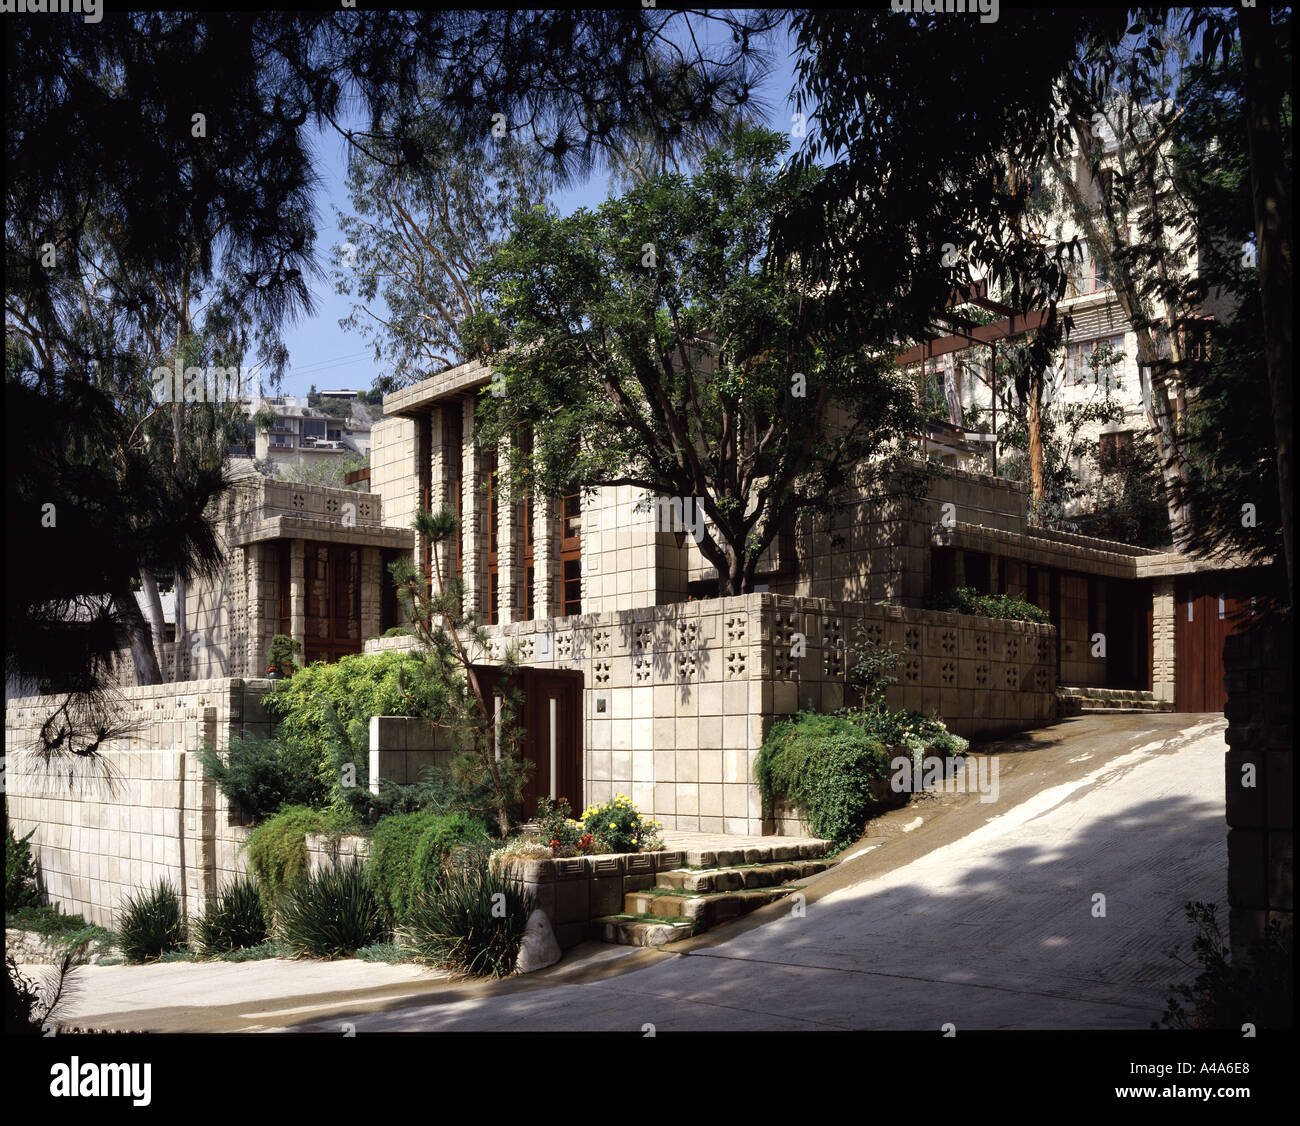 The storer house los angeles california architect frank for Frank lloyd wright houses in california